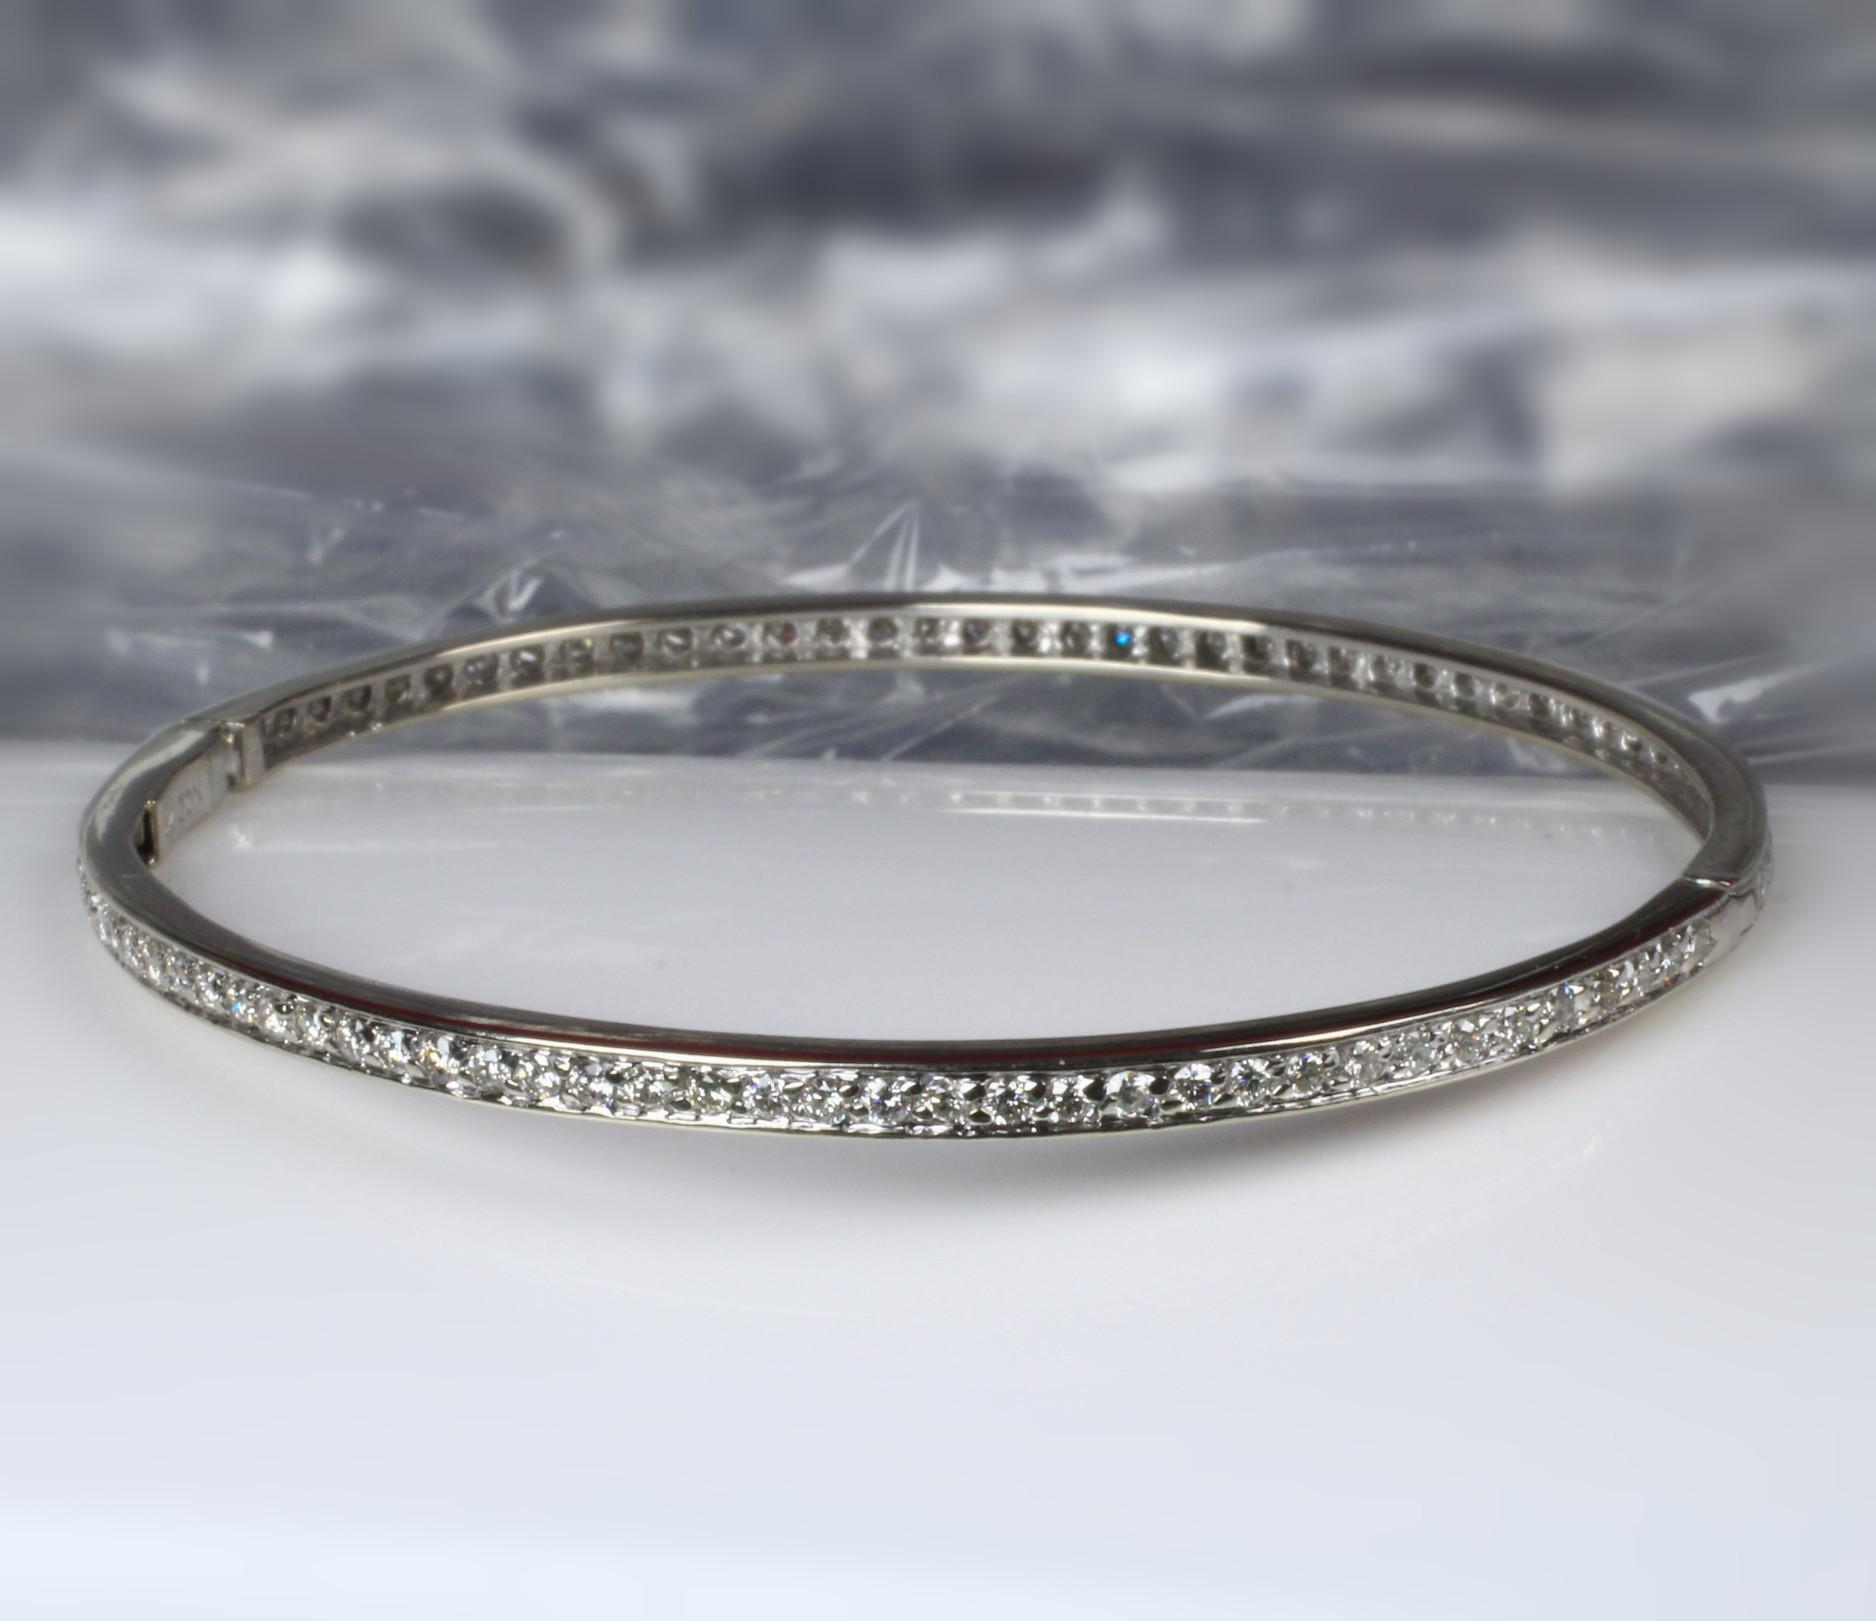 14K White Gold 1.20 Carat Diamond Bracelet